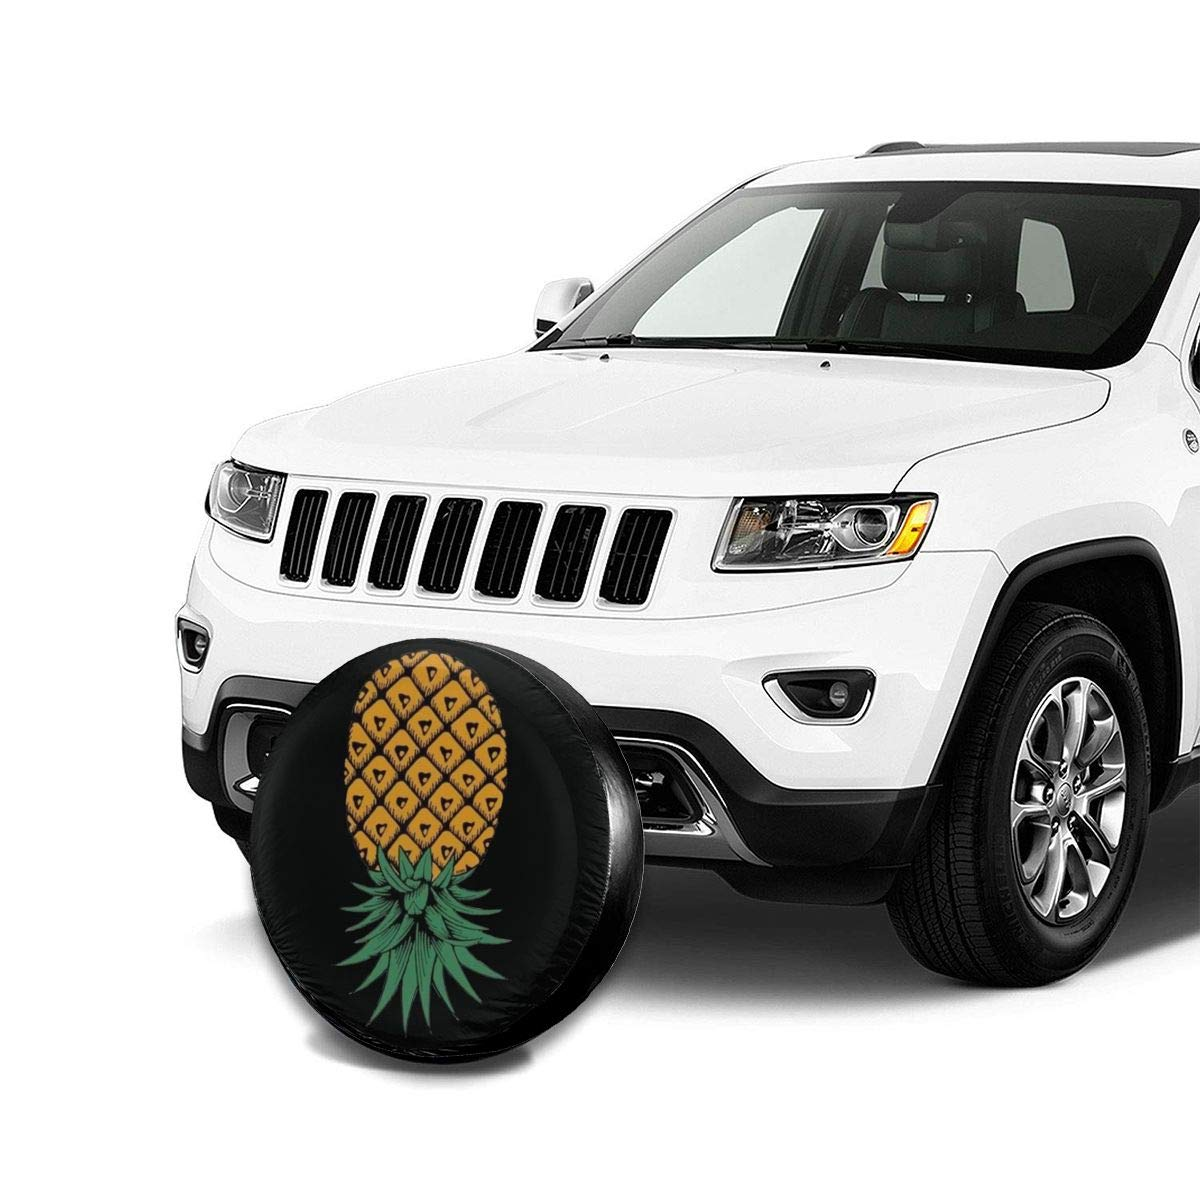 JOMMP-PO Upside Down Pineapple Symbol Spare Tire Cover Waterproof Dust-Proof Universal Spare Wheel Tire Cover Fit for Jeep,Trailer RV SUV and Many Vehicle